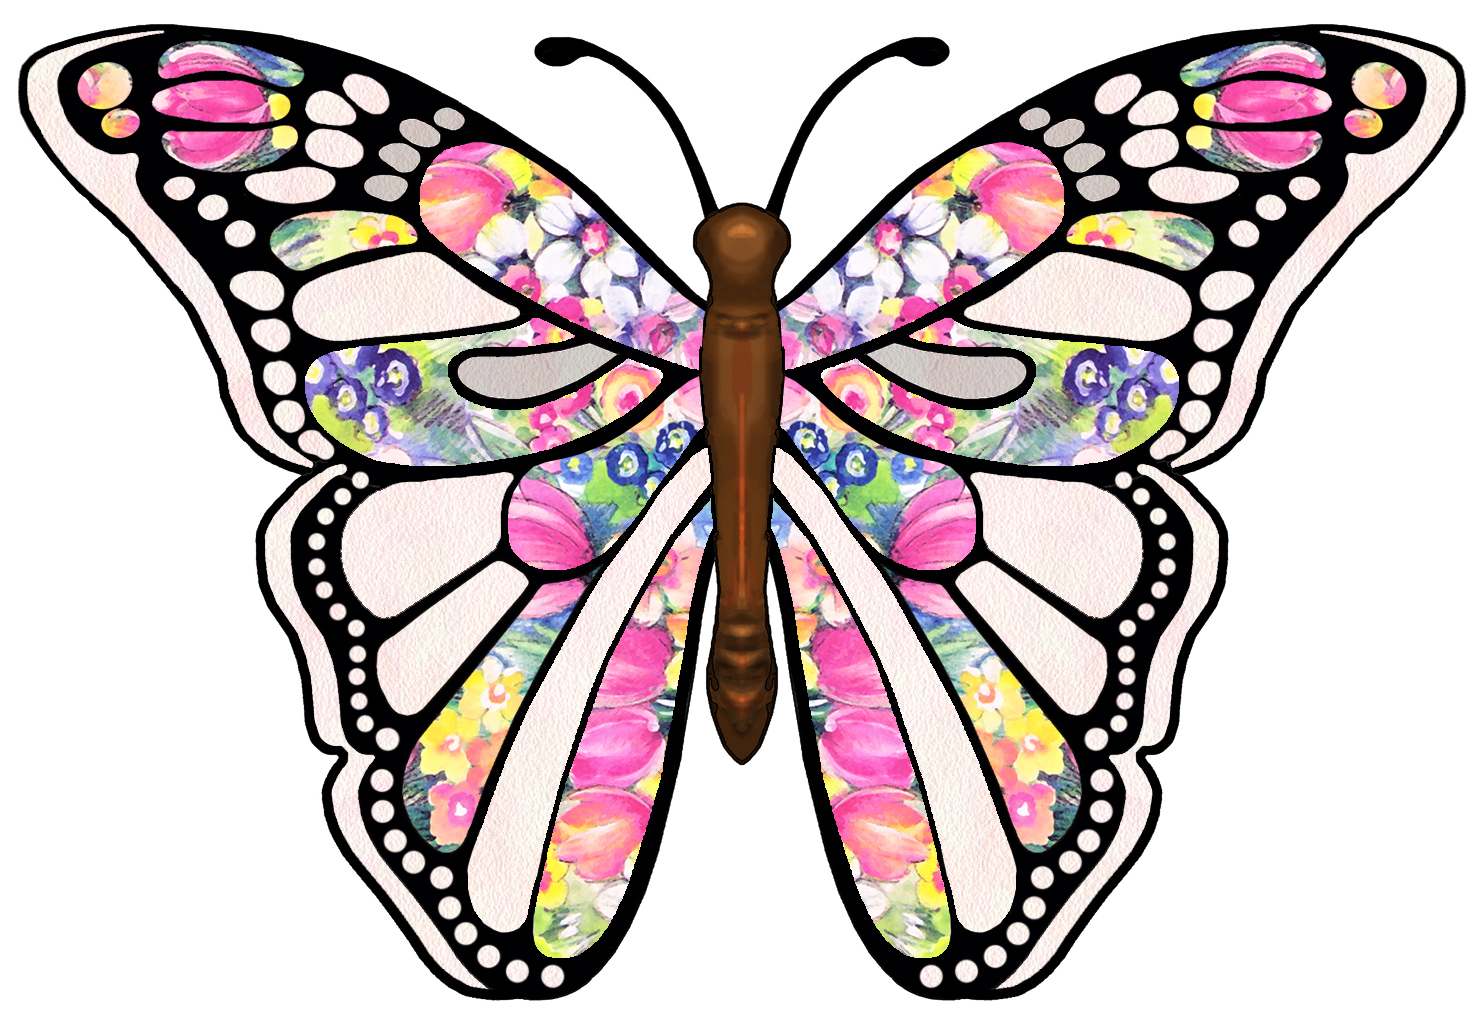 1484x1026 Clipart Butterfly Clip Art Free Borders Image 7 2